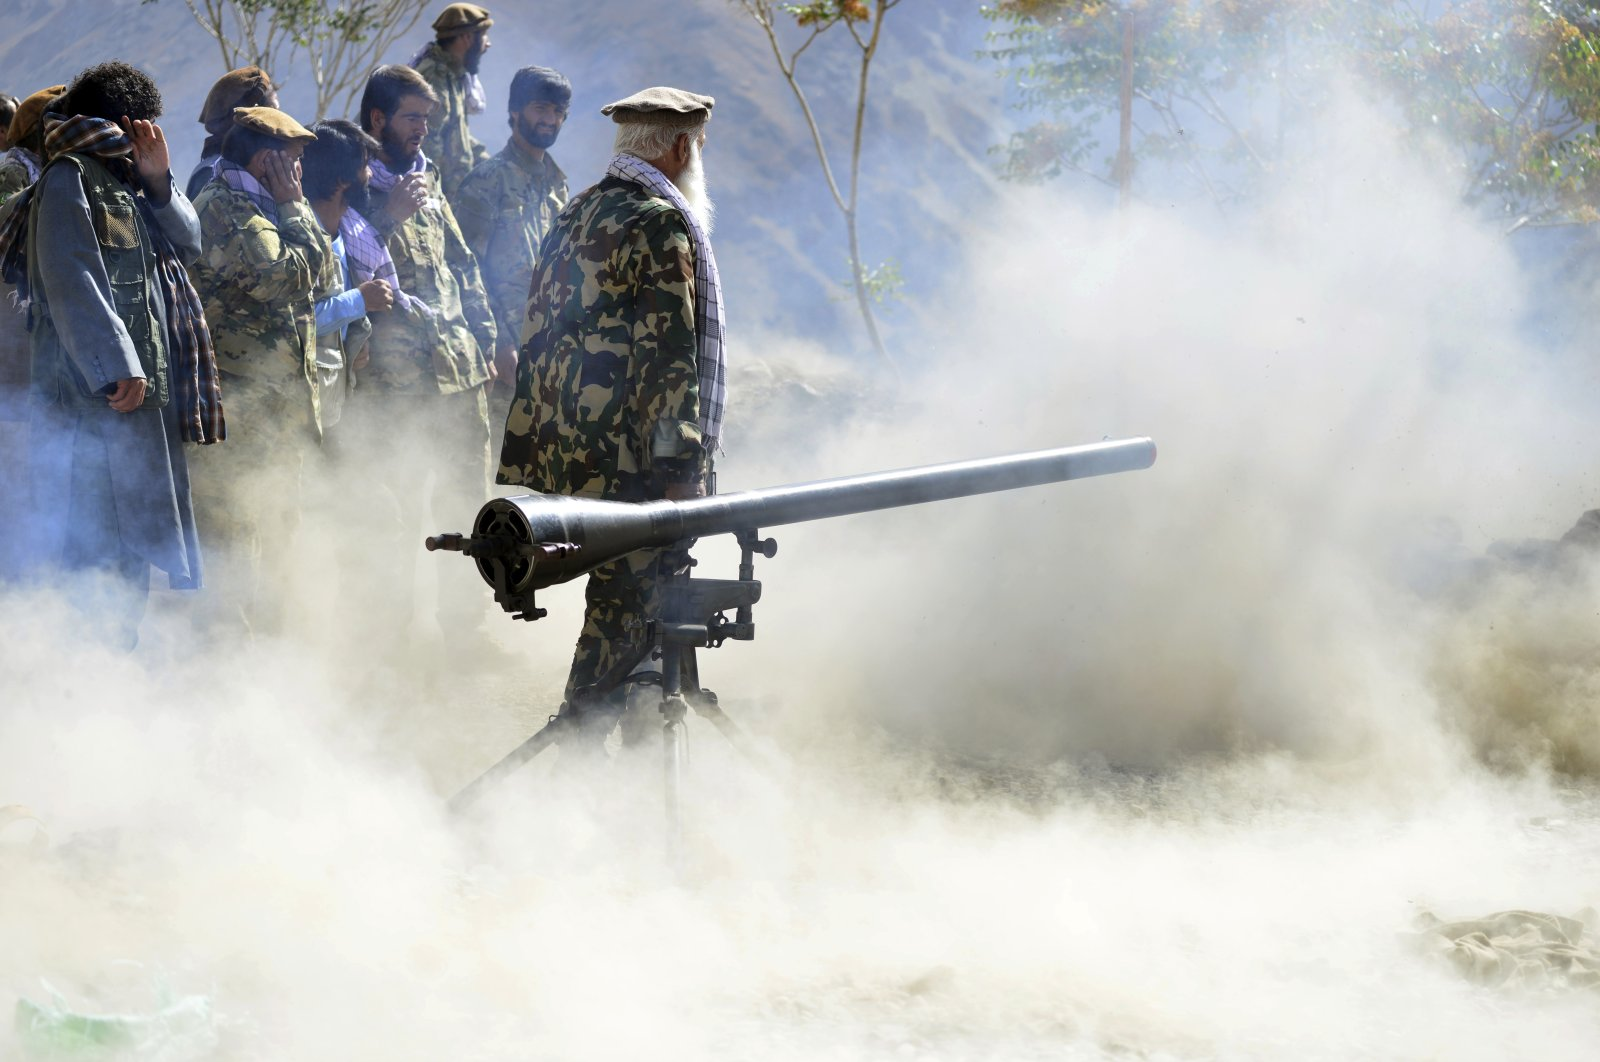 Militiamen loyal to Ahmad Massoud, son of the late Ahmad Shah Massoud, take part in a training exercise, in Panjshir province, northeastern Afghanistan, Monday, Aug. 30, 2021. (AP Photo)